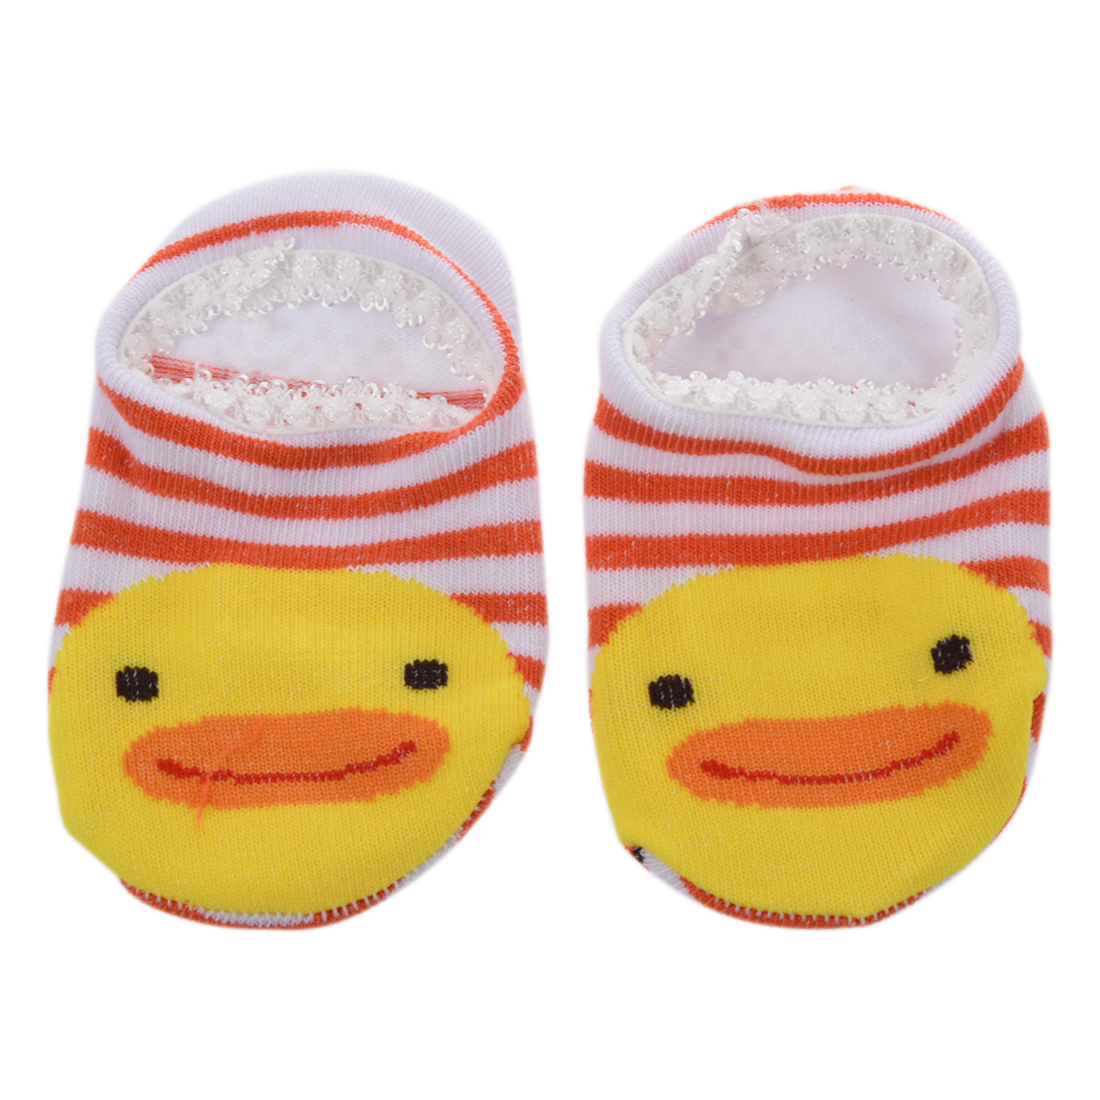 FBIL-1 pair of baby socks anti-slip Non-slip socks slippers (color random)